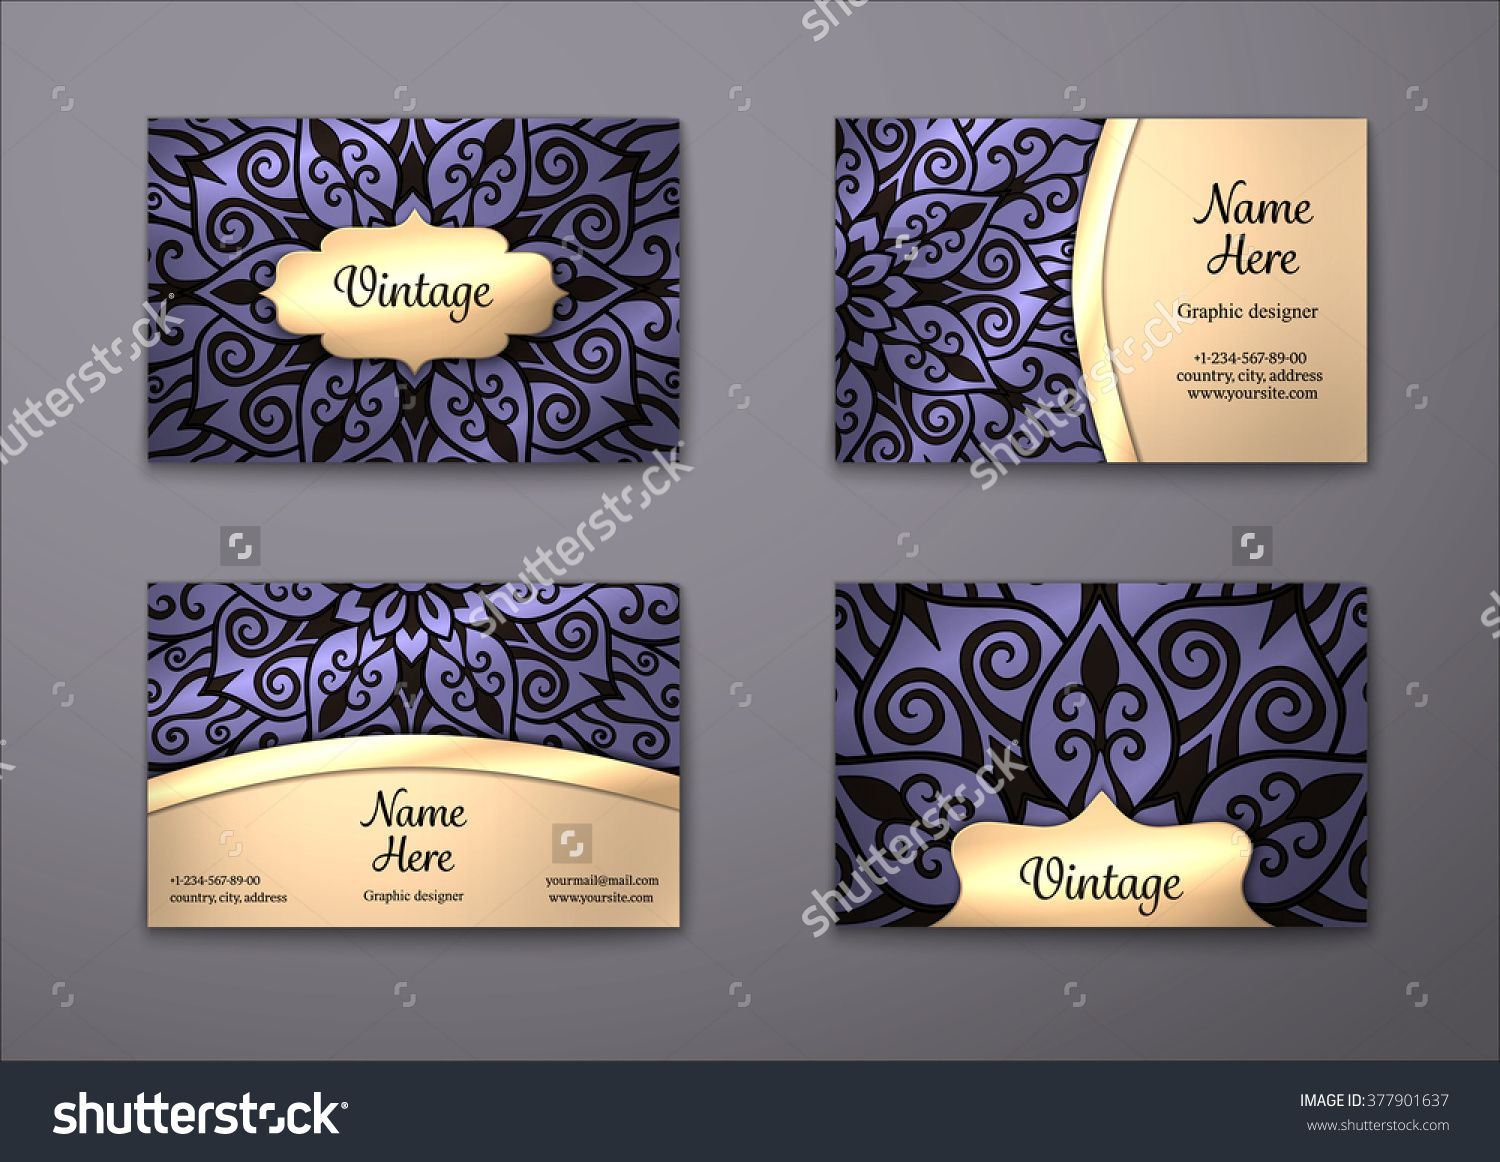 Vector Vintage Visiting Card Set. Floral Mandala Pattern And Ornaments. Oriental Design Layout. Islam, Arabic, Indian, Ottoman Motifs. Front Page And Back Page. - 377901637 : Shutterstock